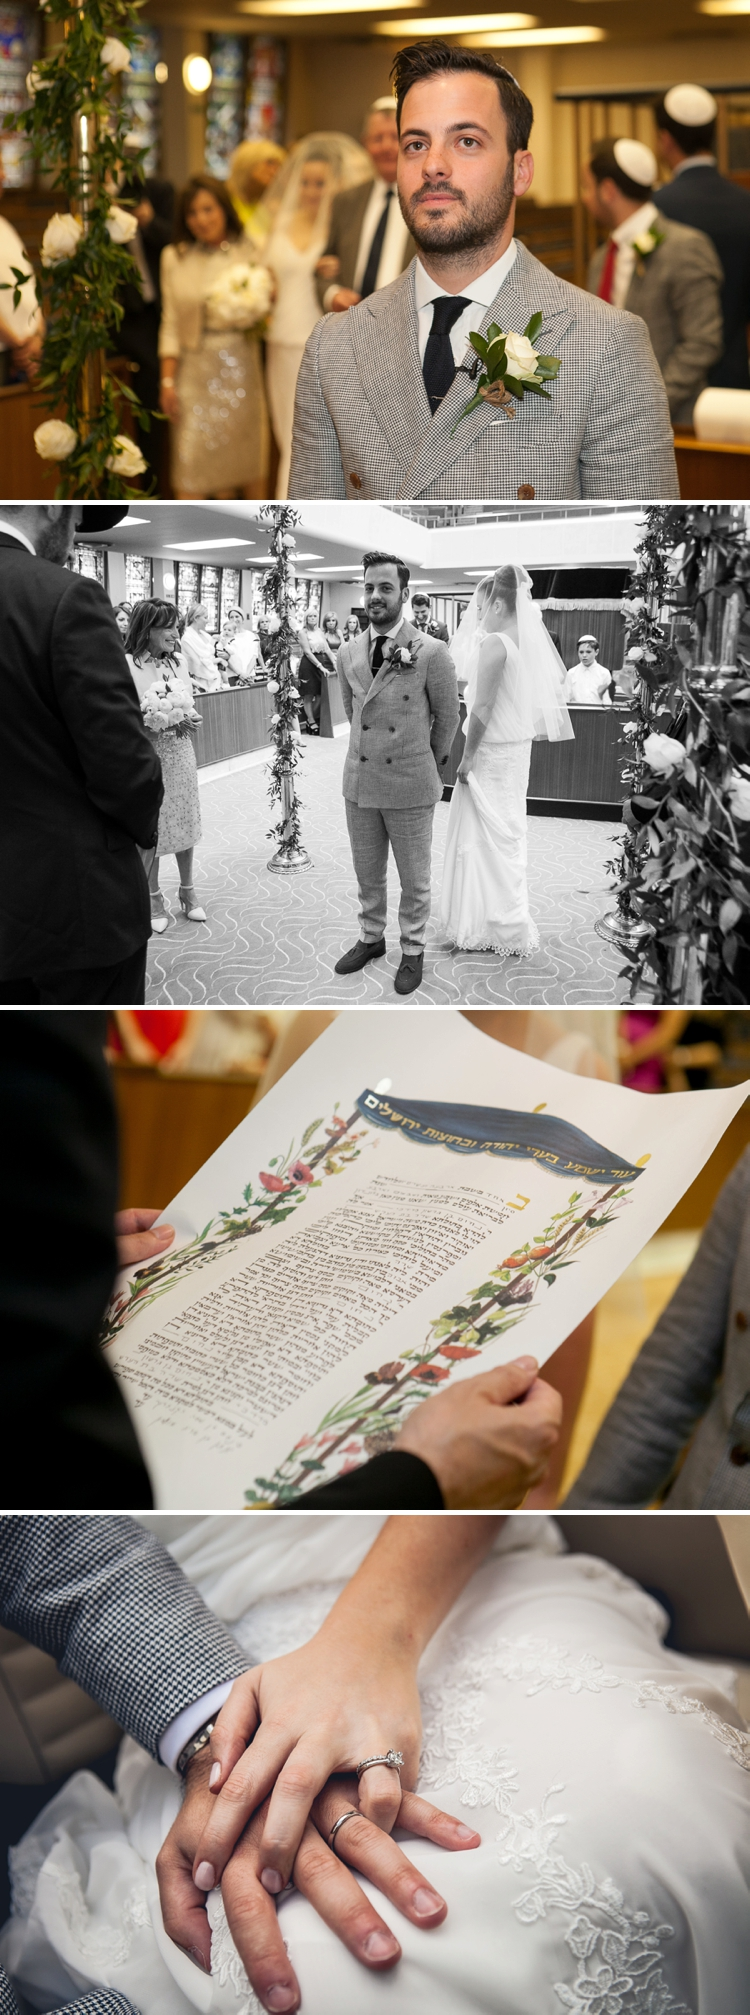 Intimate Jewish wedding at Forman's Smoked Salmon Fish Factory, Olympic Park, London, UK